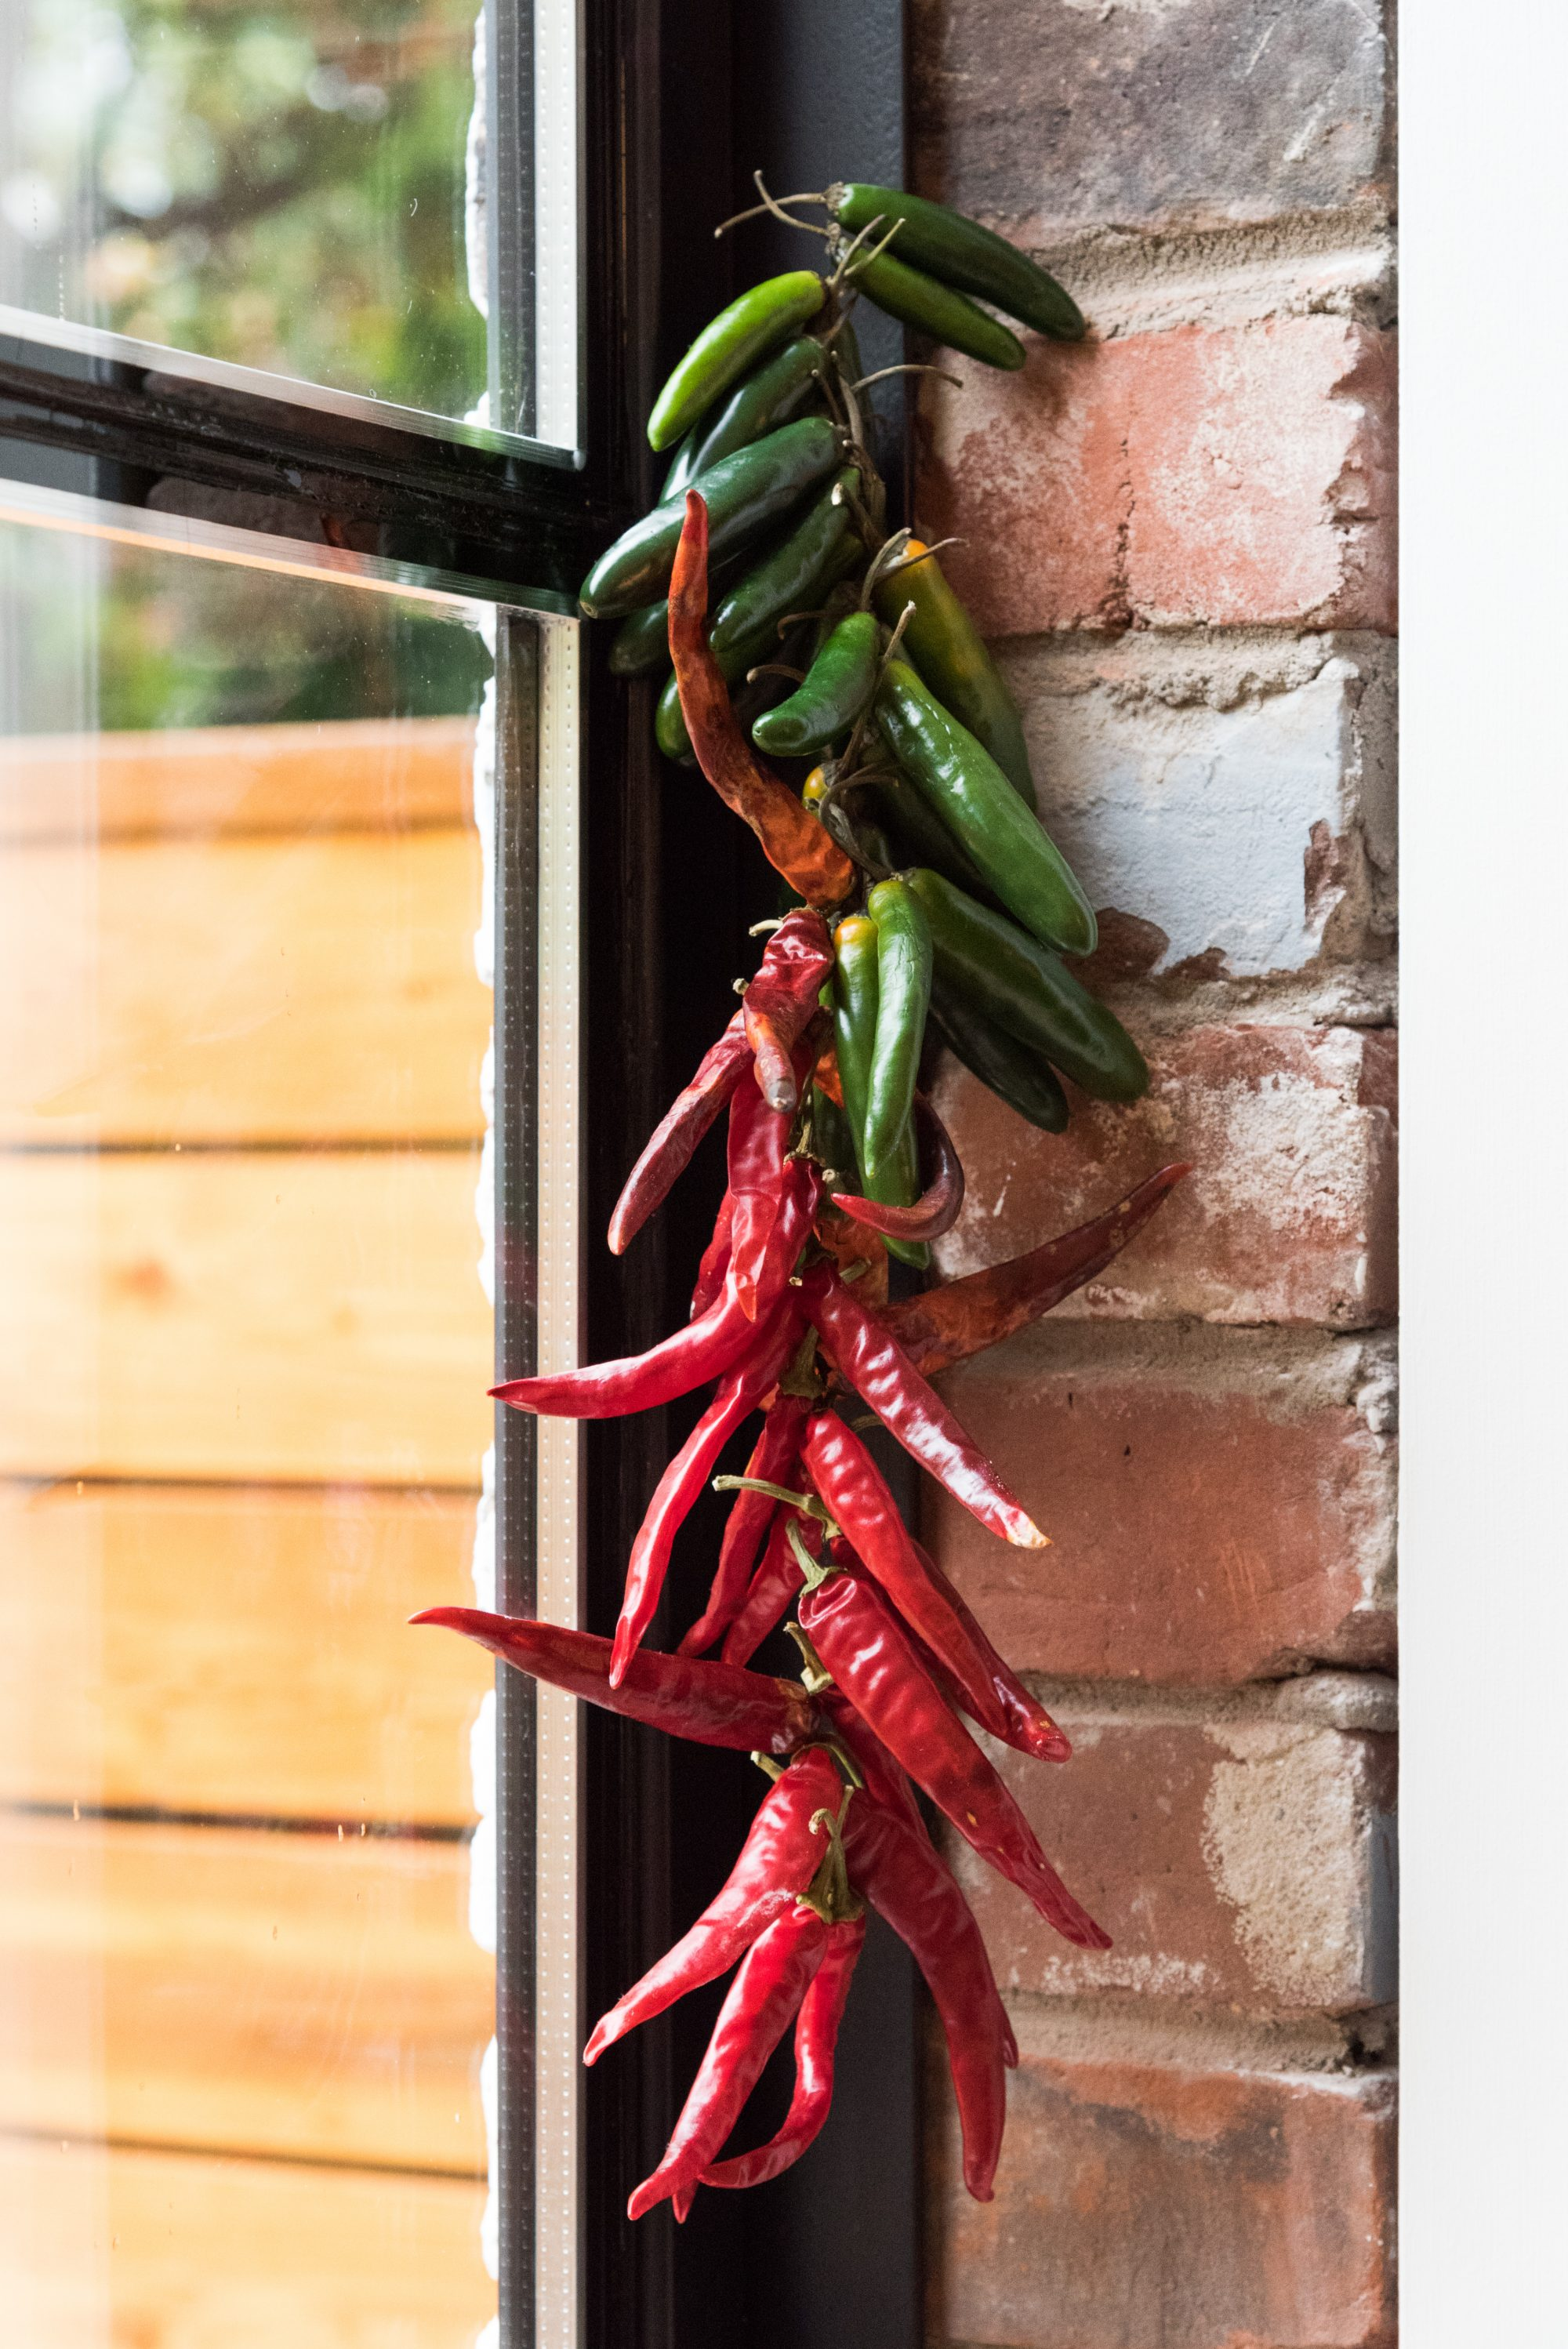 kitchen-diaries-toronto-chefs-at-home-rob-gentile-bar-buca-peppers-2000x2996.jpg